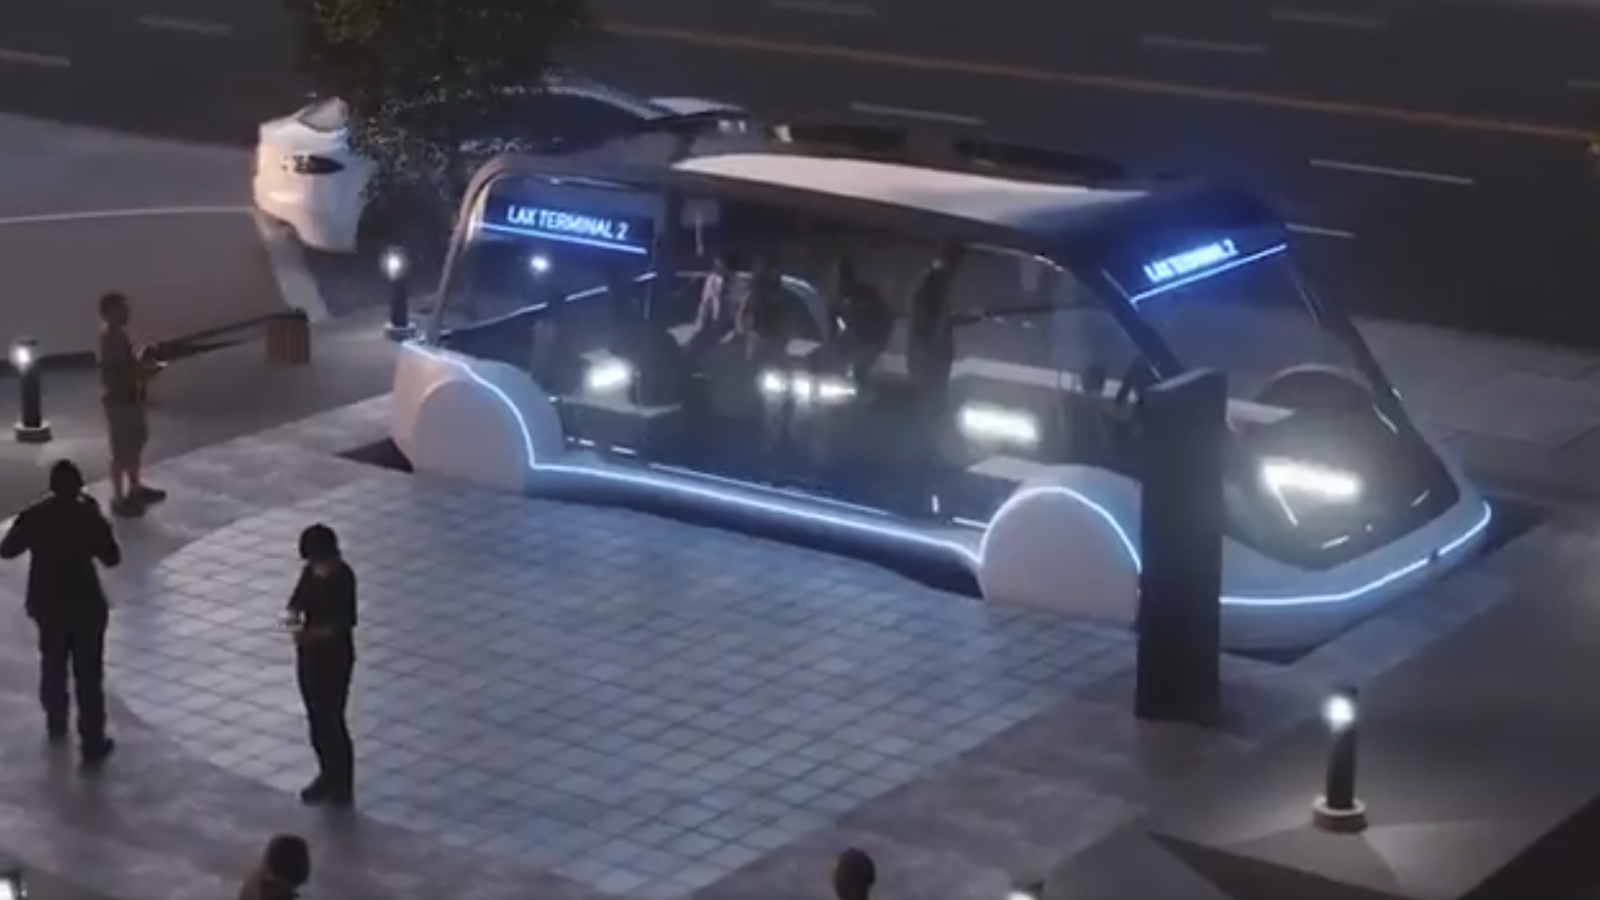 tunnel based Hyperloop mass transit